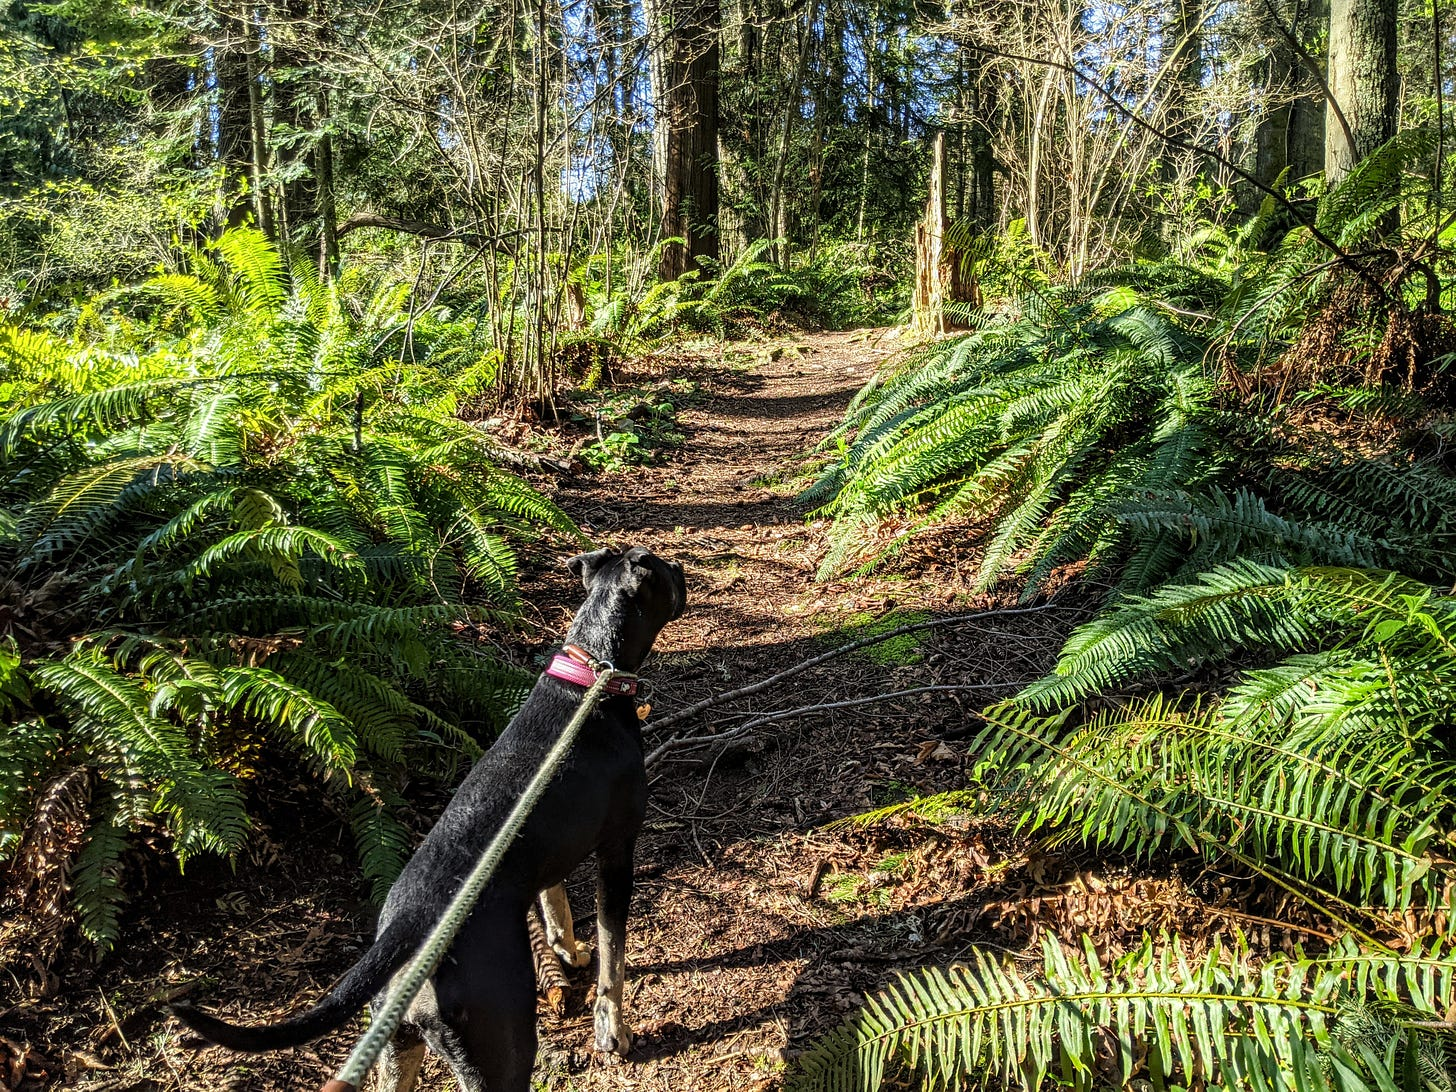 Mabel is eager to travel the path of understanding. (Photo: David Roberts)